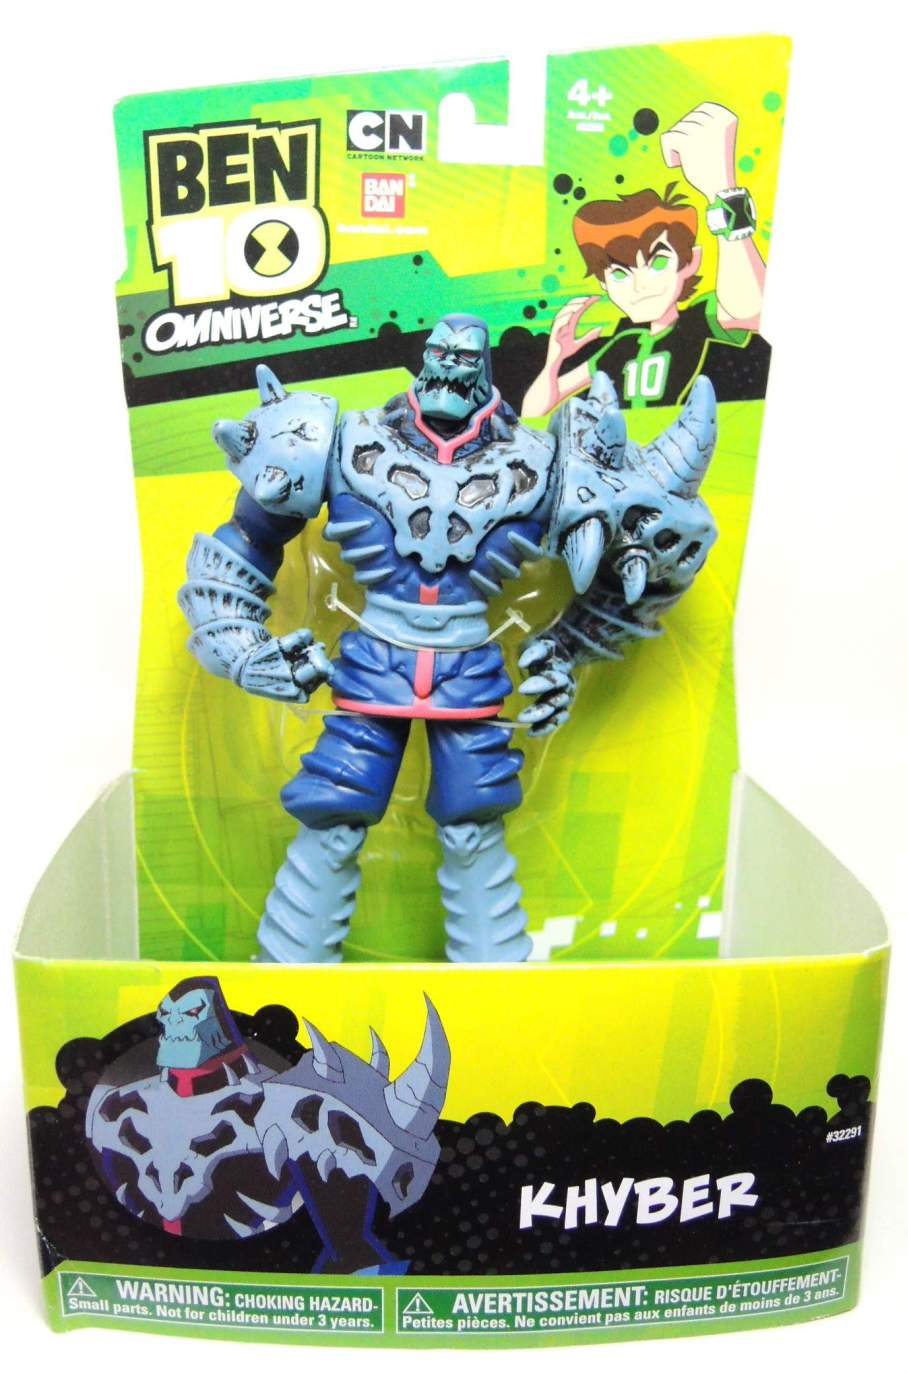 Ben 10 Omniverse Vinyl Kaiju Khyber 6 5 Inch Now 28 57 And Shipping Is Free